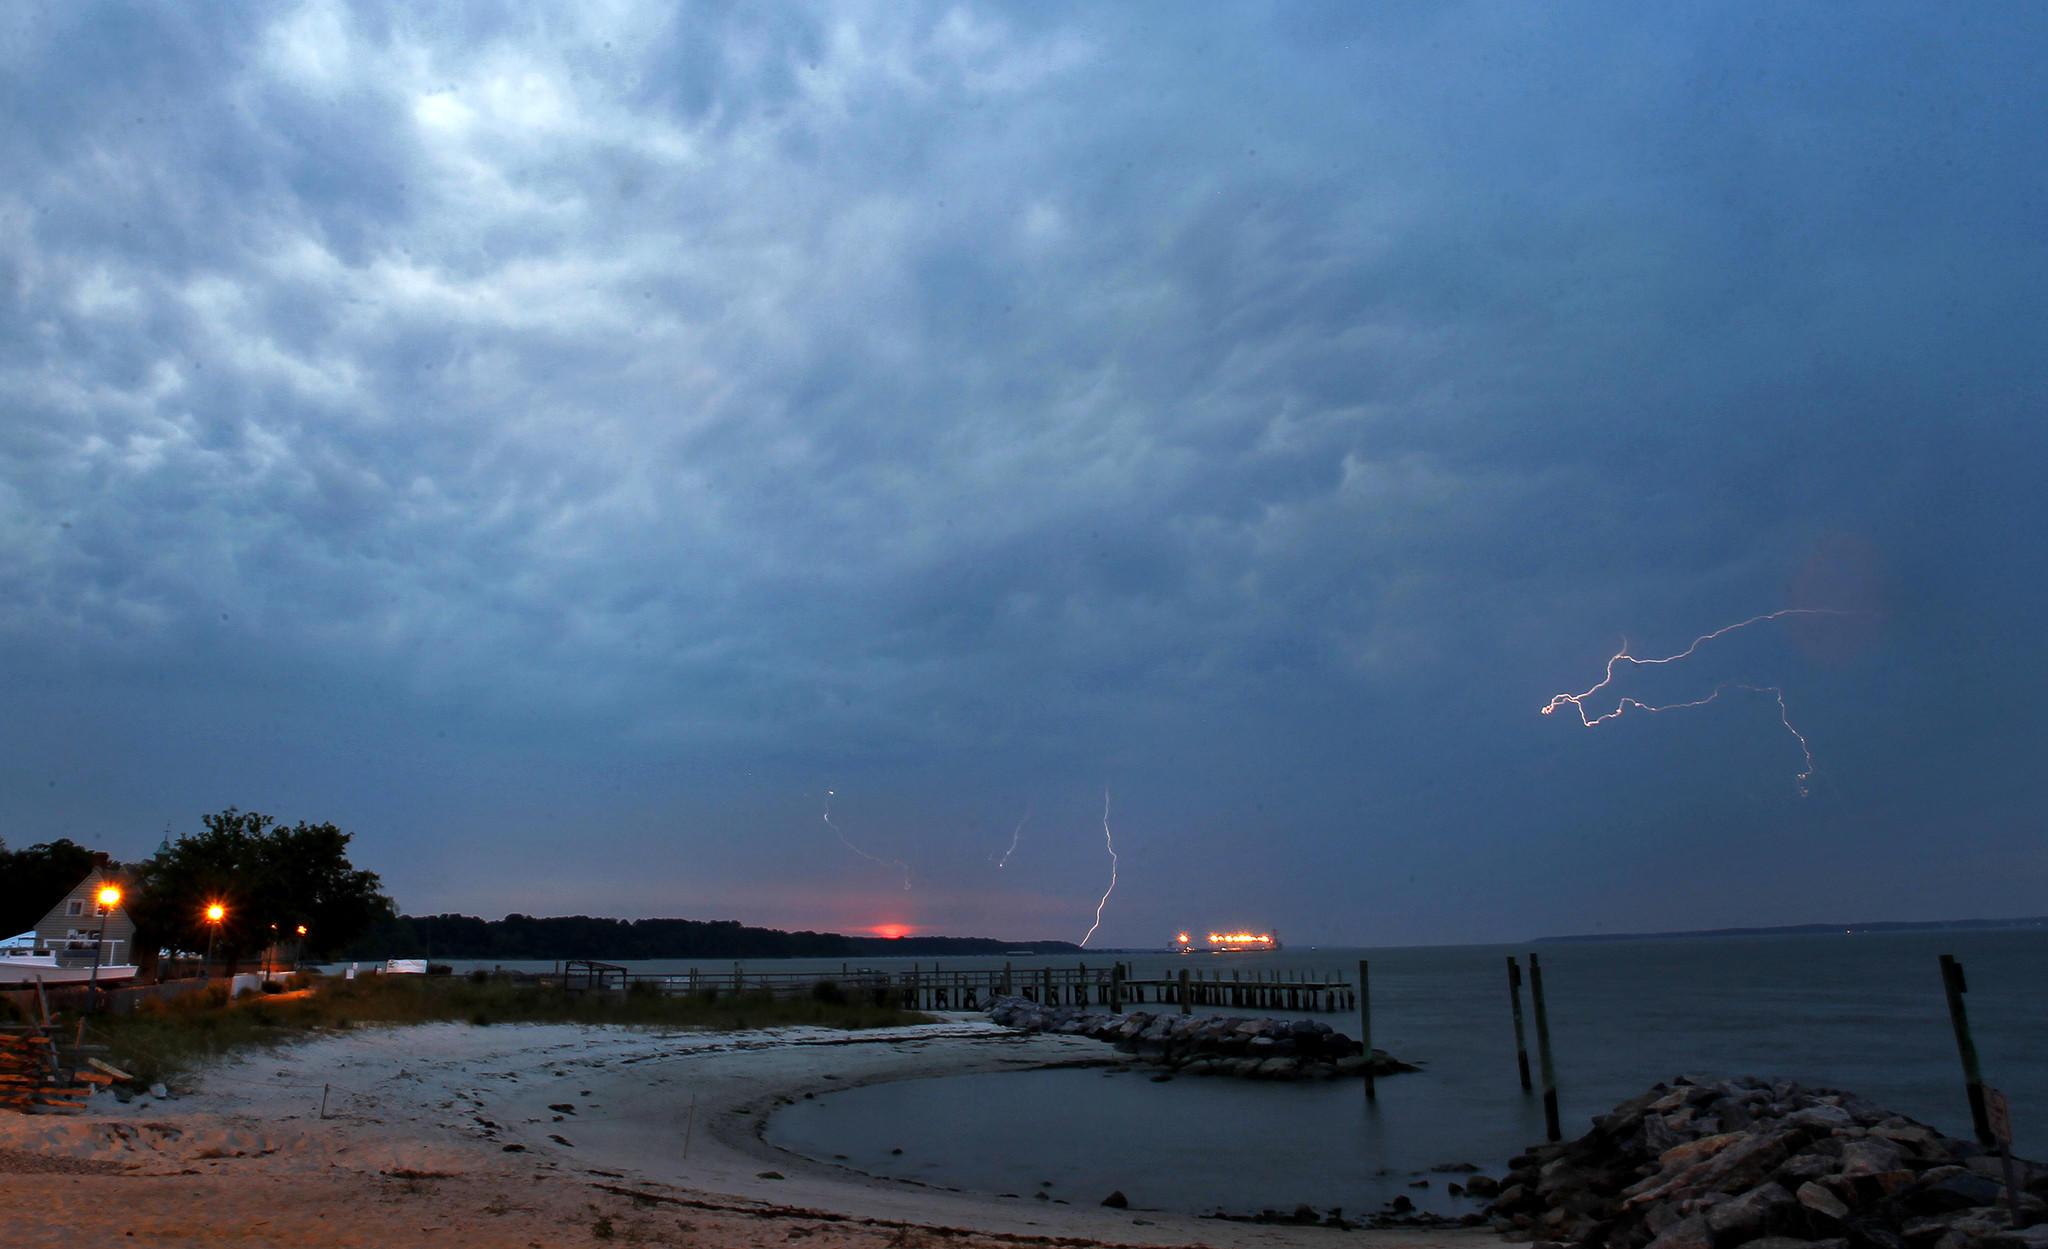 Storm clouds move into Yorktown beach in the evening in June 2013.